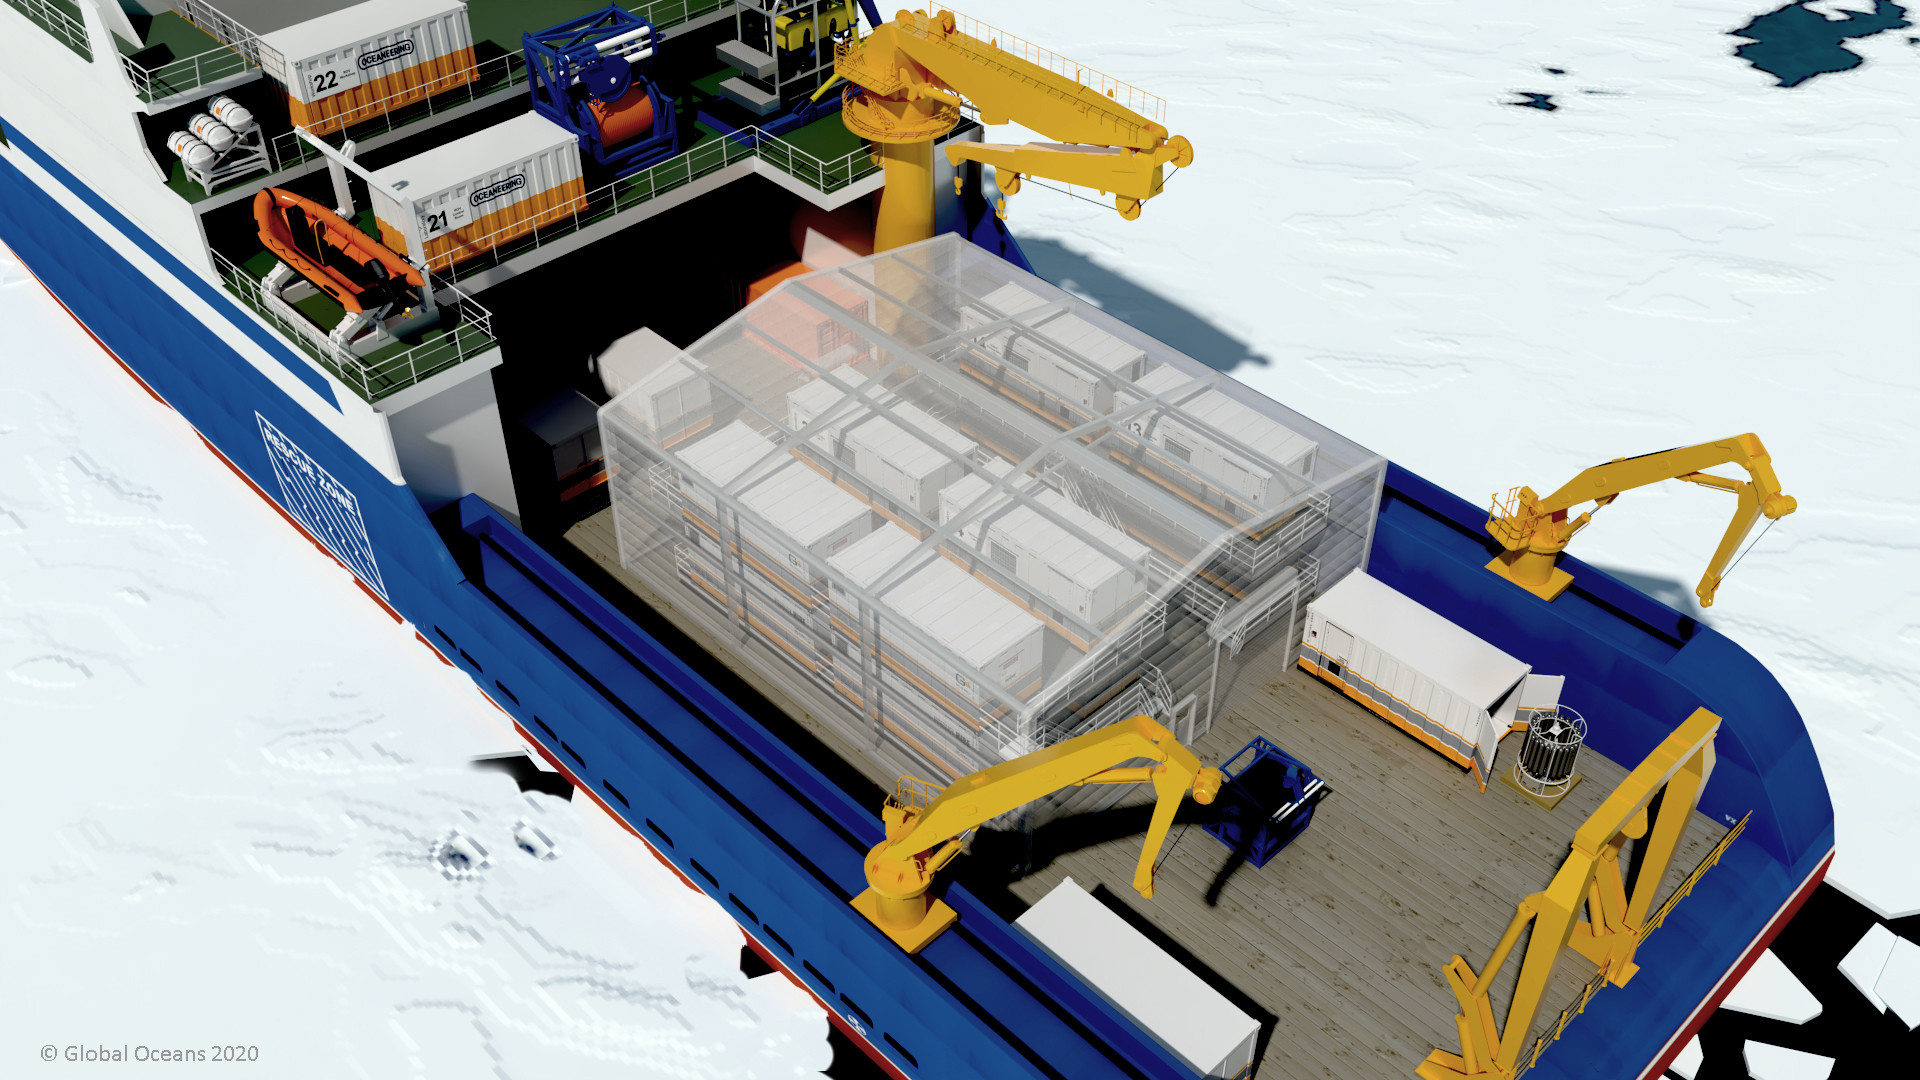 Figure 4: Global Oceans worked with Cocoon, Inc. to design a portable insulated shell for SASx workspace modules.